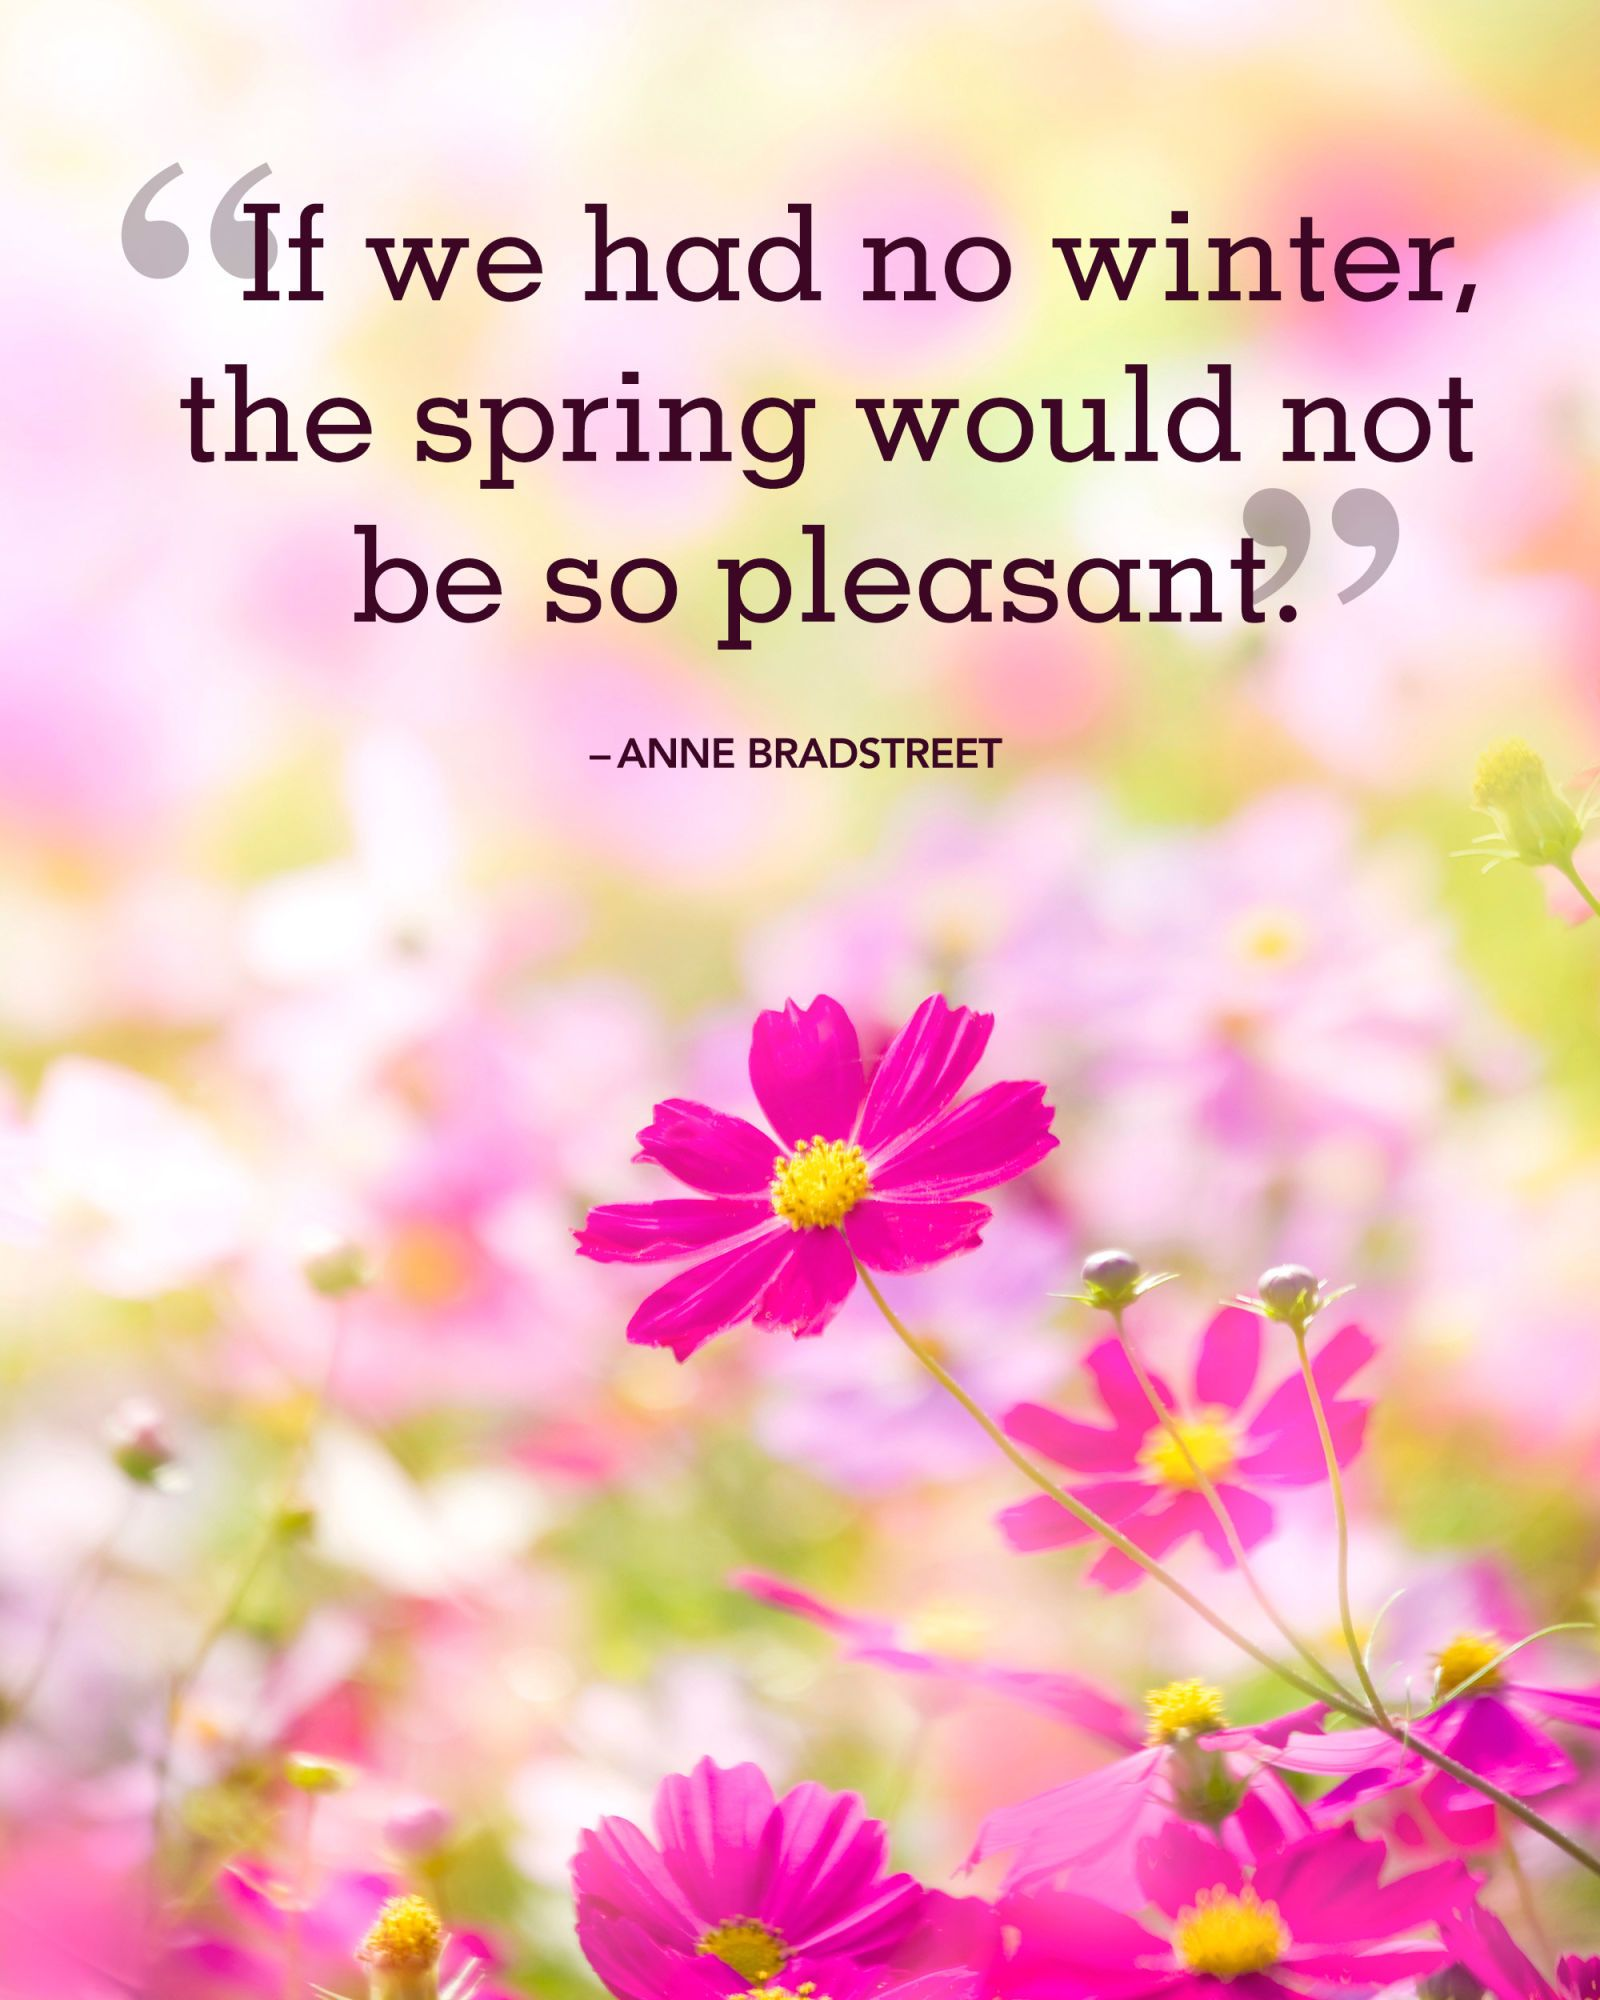 Inspirational Quotes About Positive: 20 Beautiful Spring Quotes For The Year's Best Season